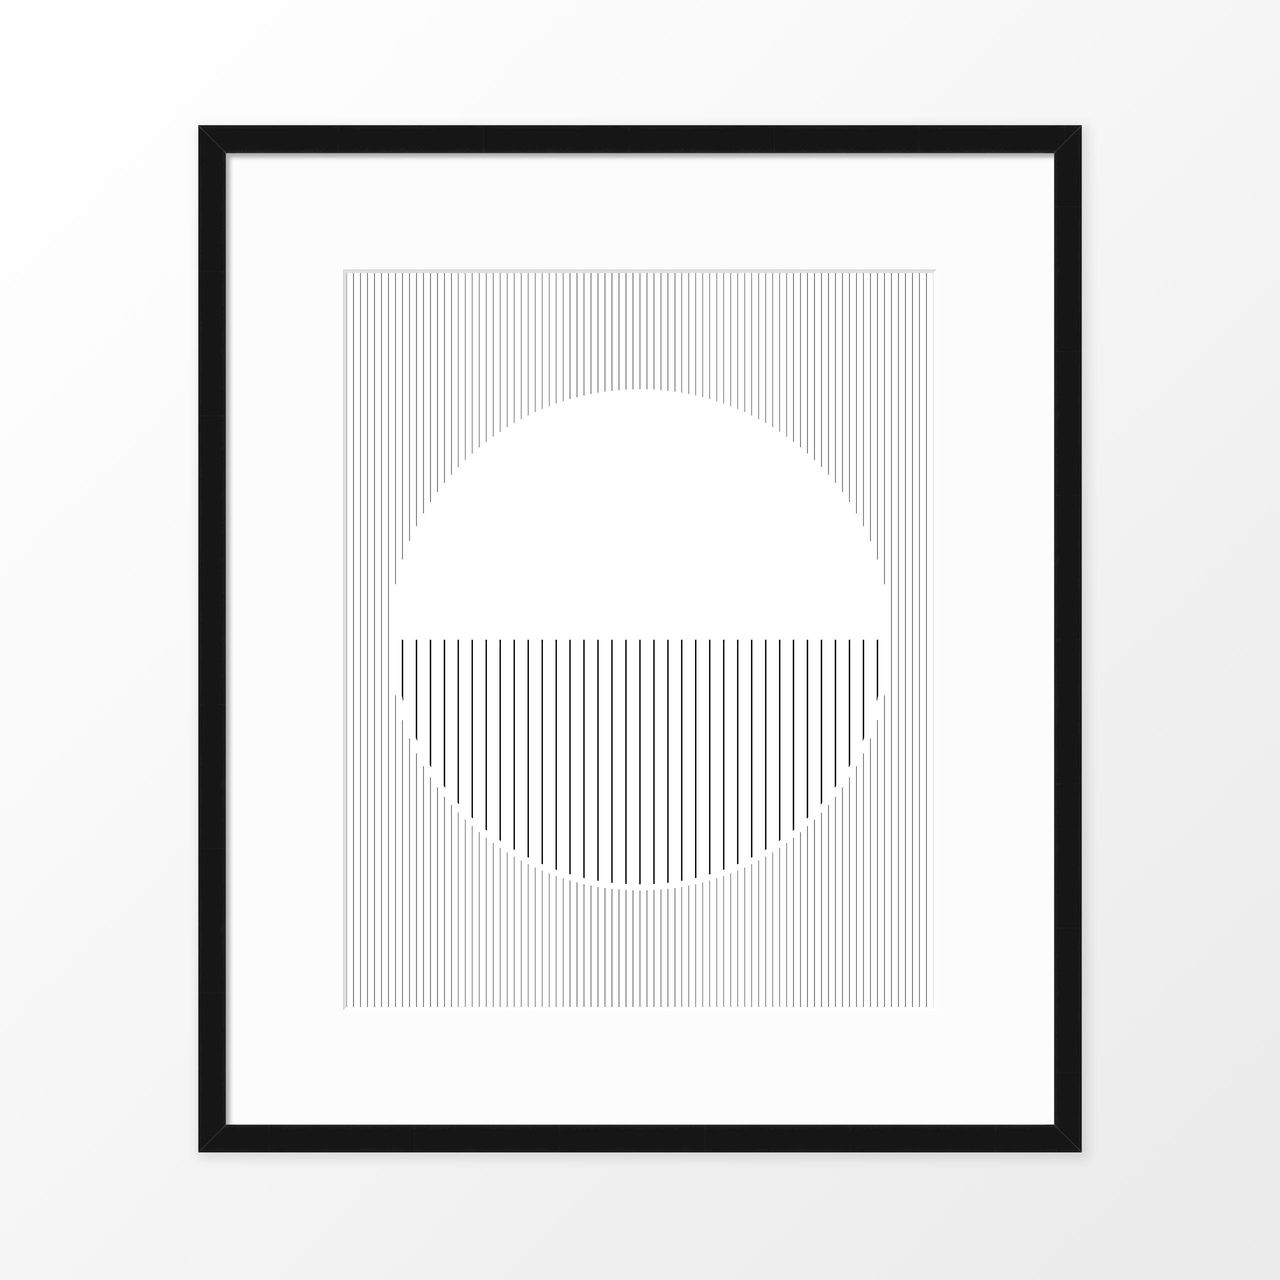 'Moon' Abstract Line Art Print from The Printed Home